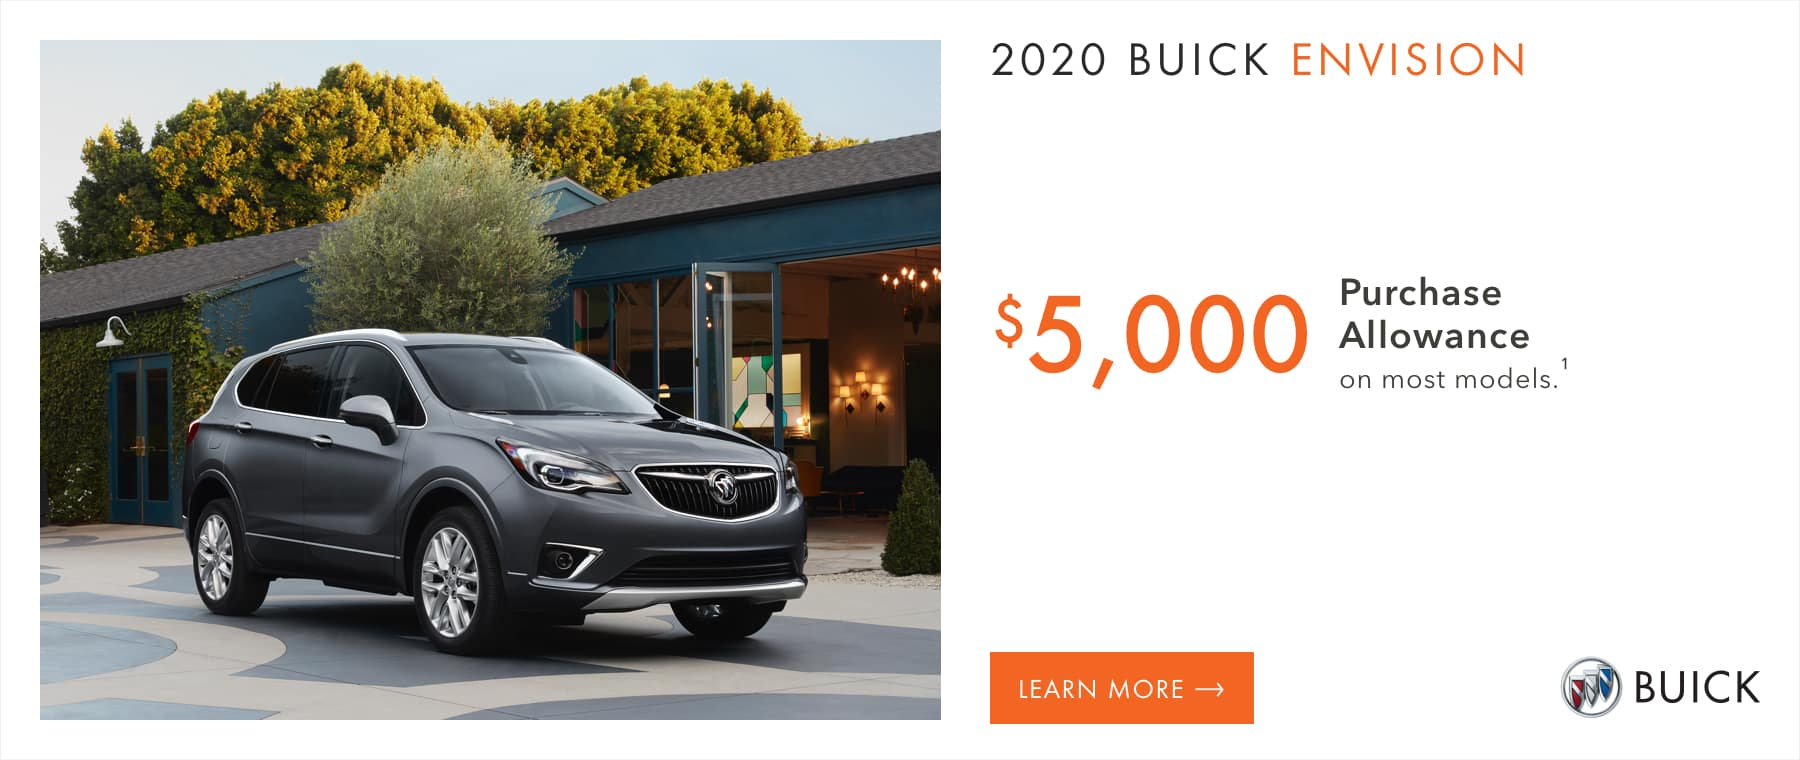 Most 2020 Buick Envision Models - $5,000 Purchase Allowance